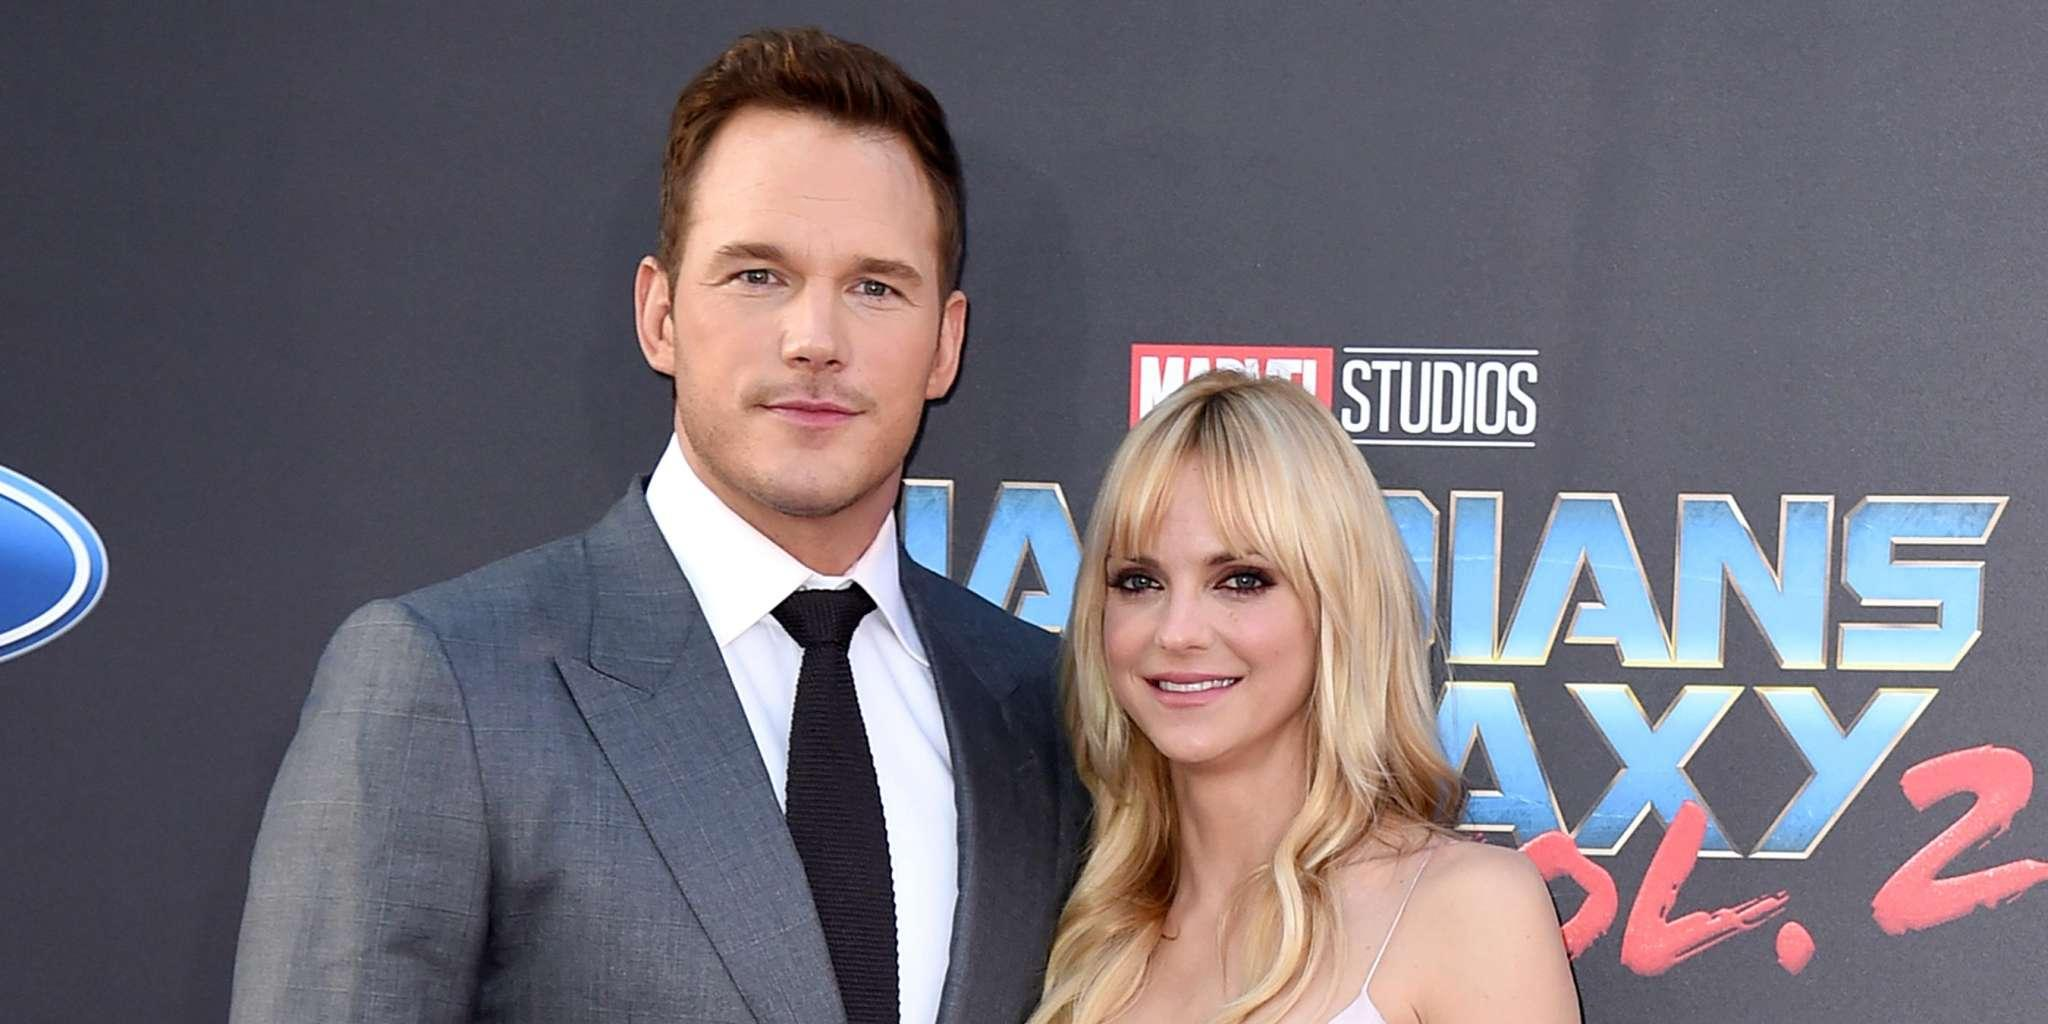 Anna Faris Claims Co-Parenting With Former Husband Chris Pratt Works Great Since They're Both In 'Loving Relationships'